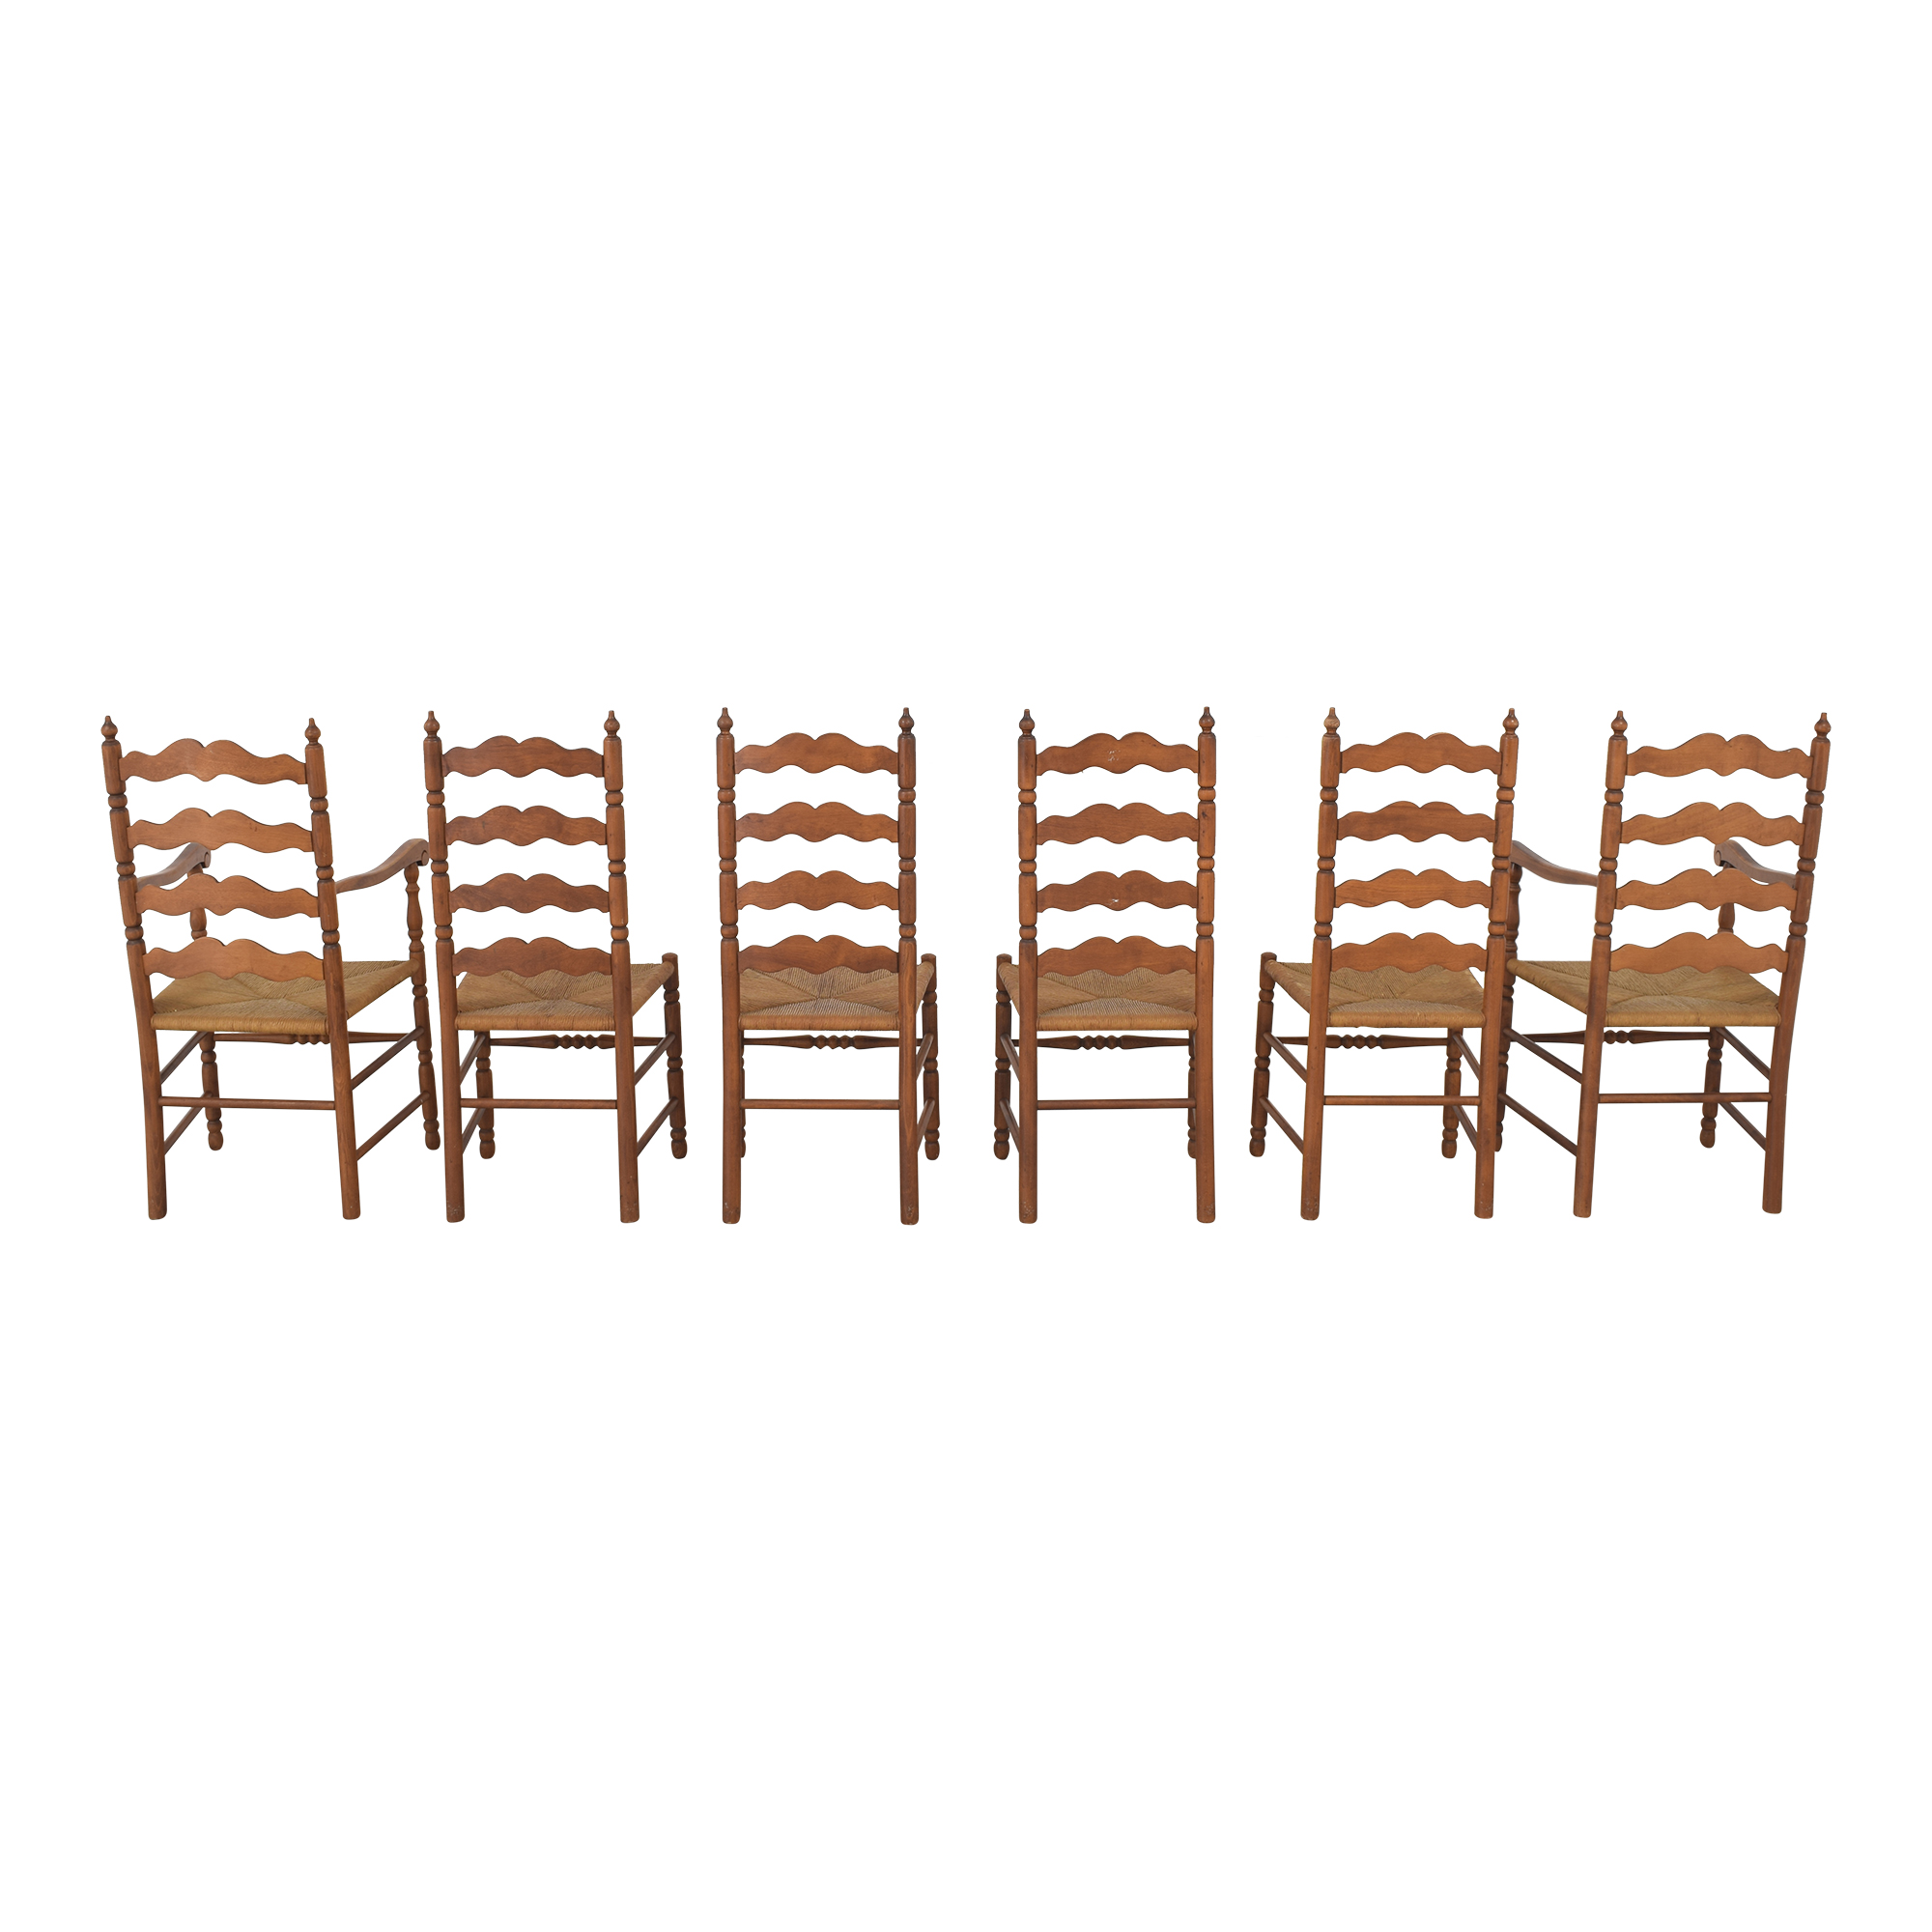 buy Tell City Ladder Back Dining Chairs Tell City Dining Chairs